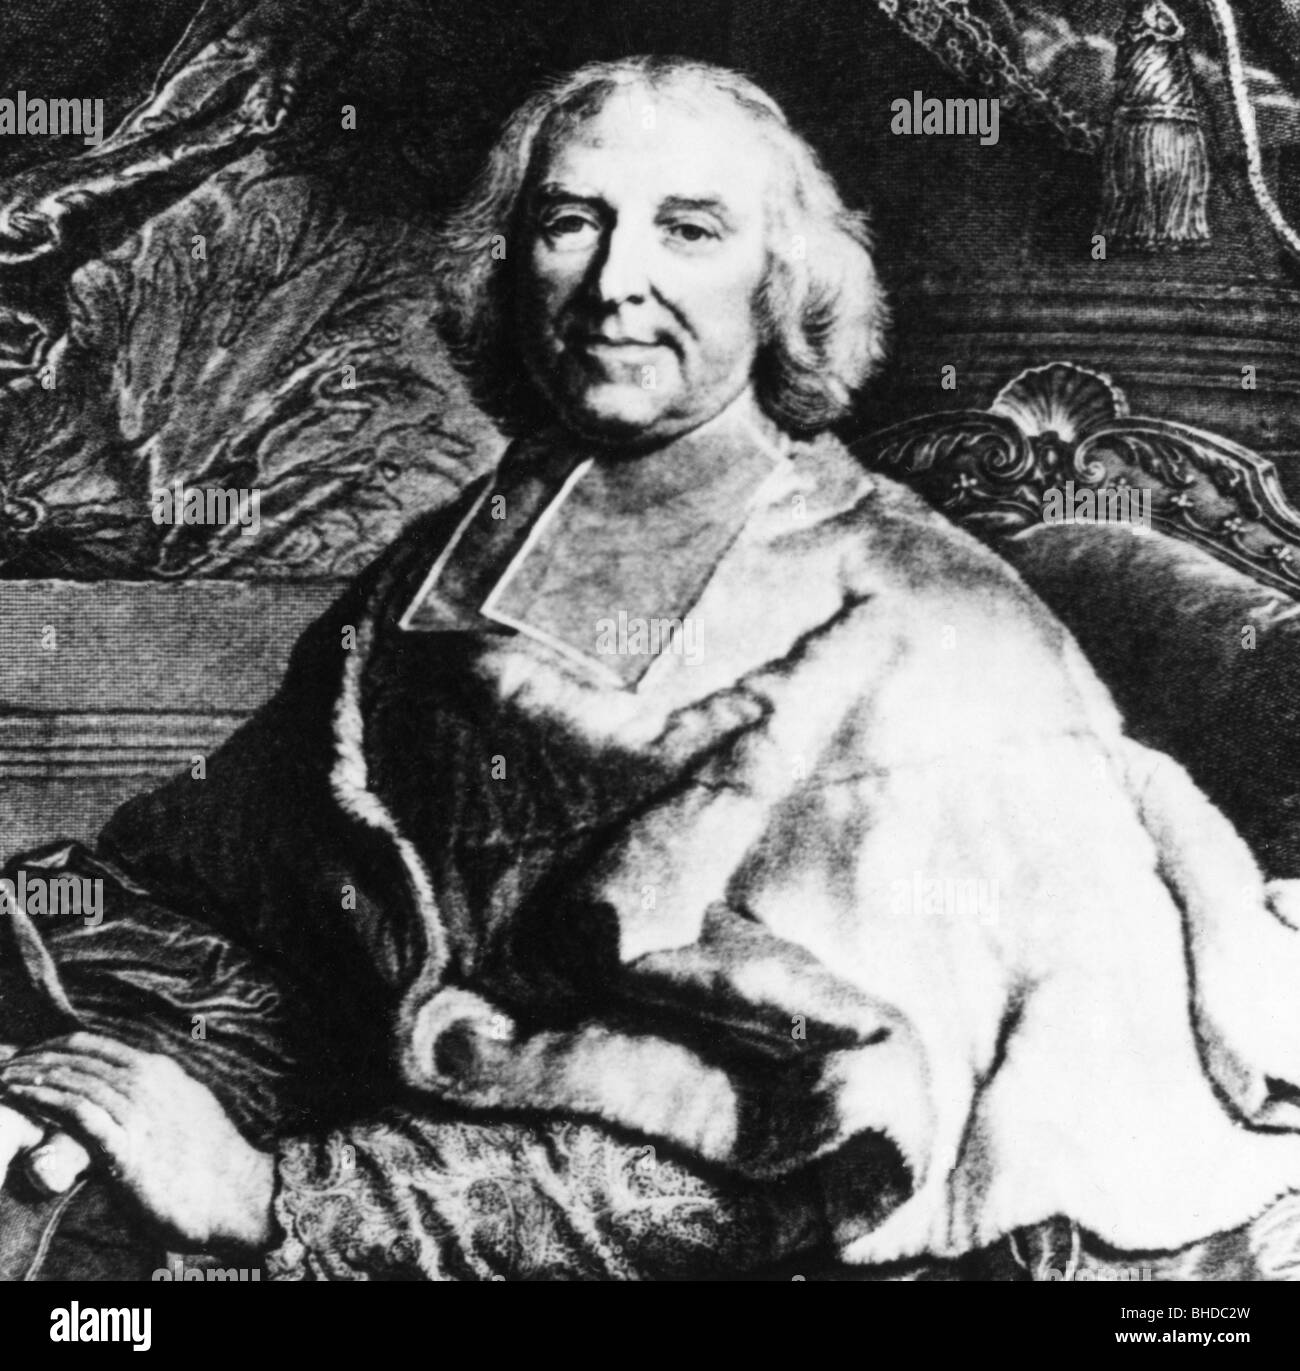 Fleury, Andre-Hercule de, 22.6.1653 - 29.1.1743, French cardinal, statesman, half length, side view, wearing cardinal`s - Stock Image